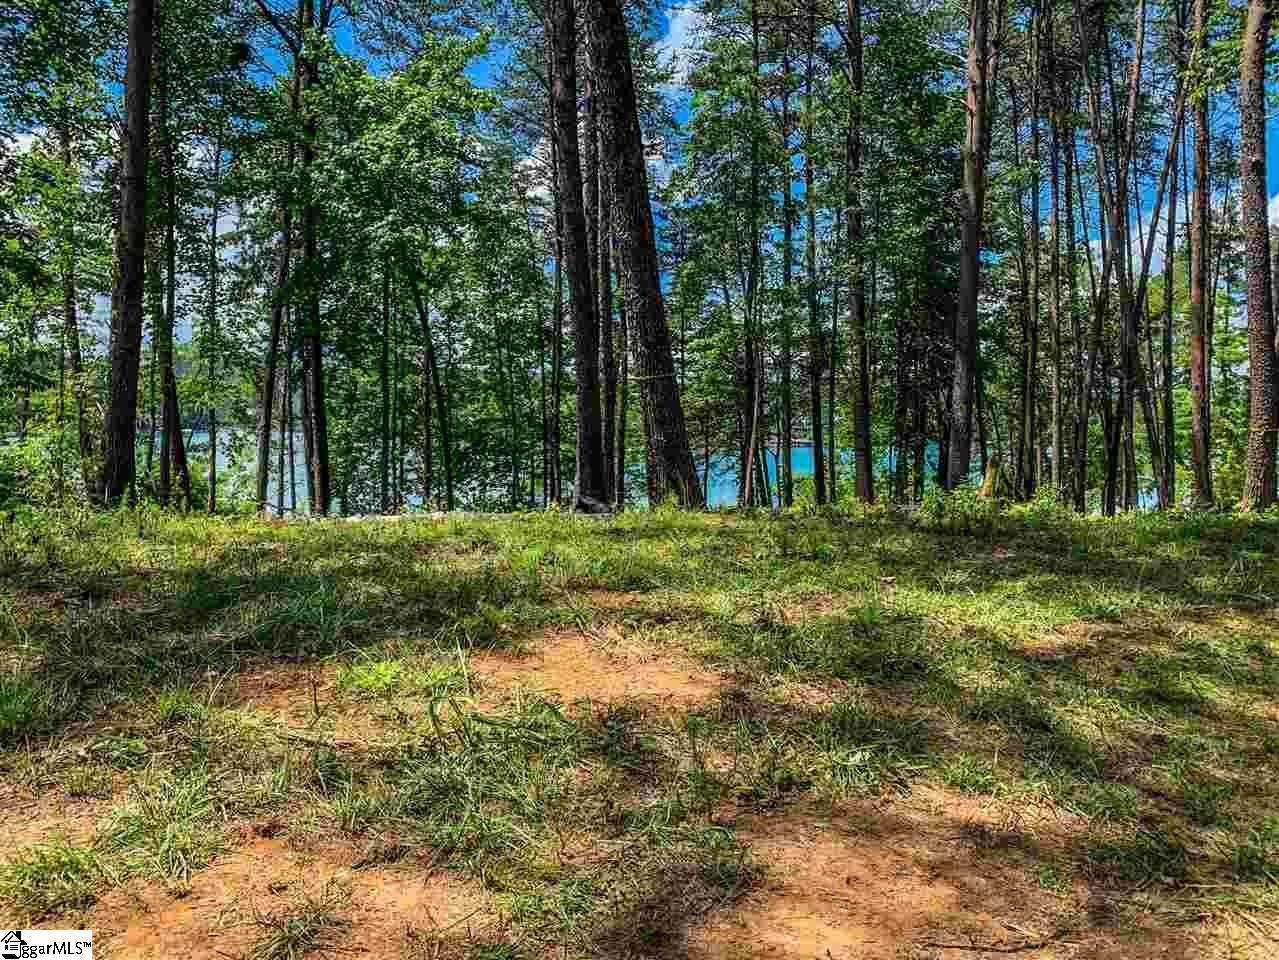 5. Residential Lot for Sale at The Reserve At Lake Keowee, Sunset, SC 29685